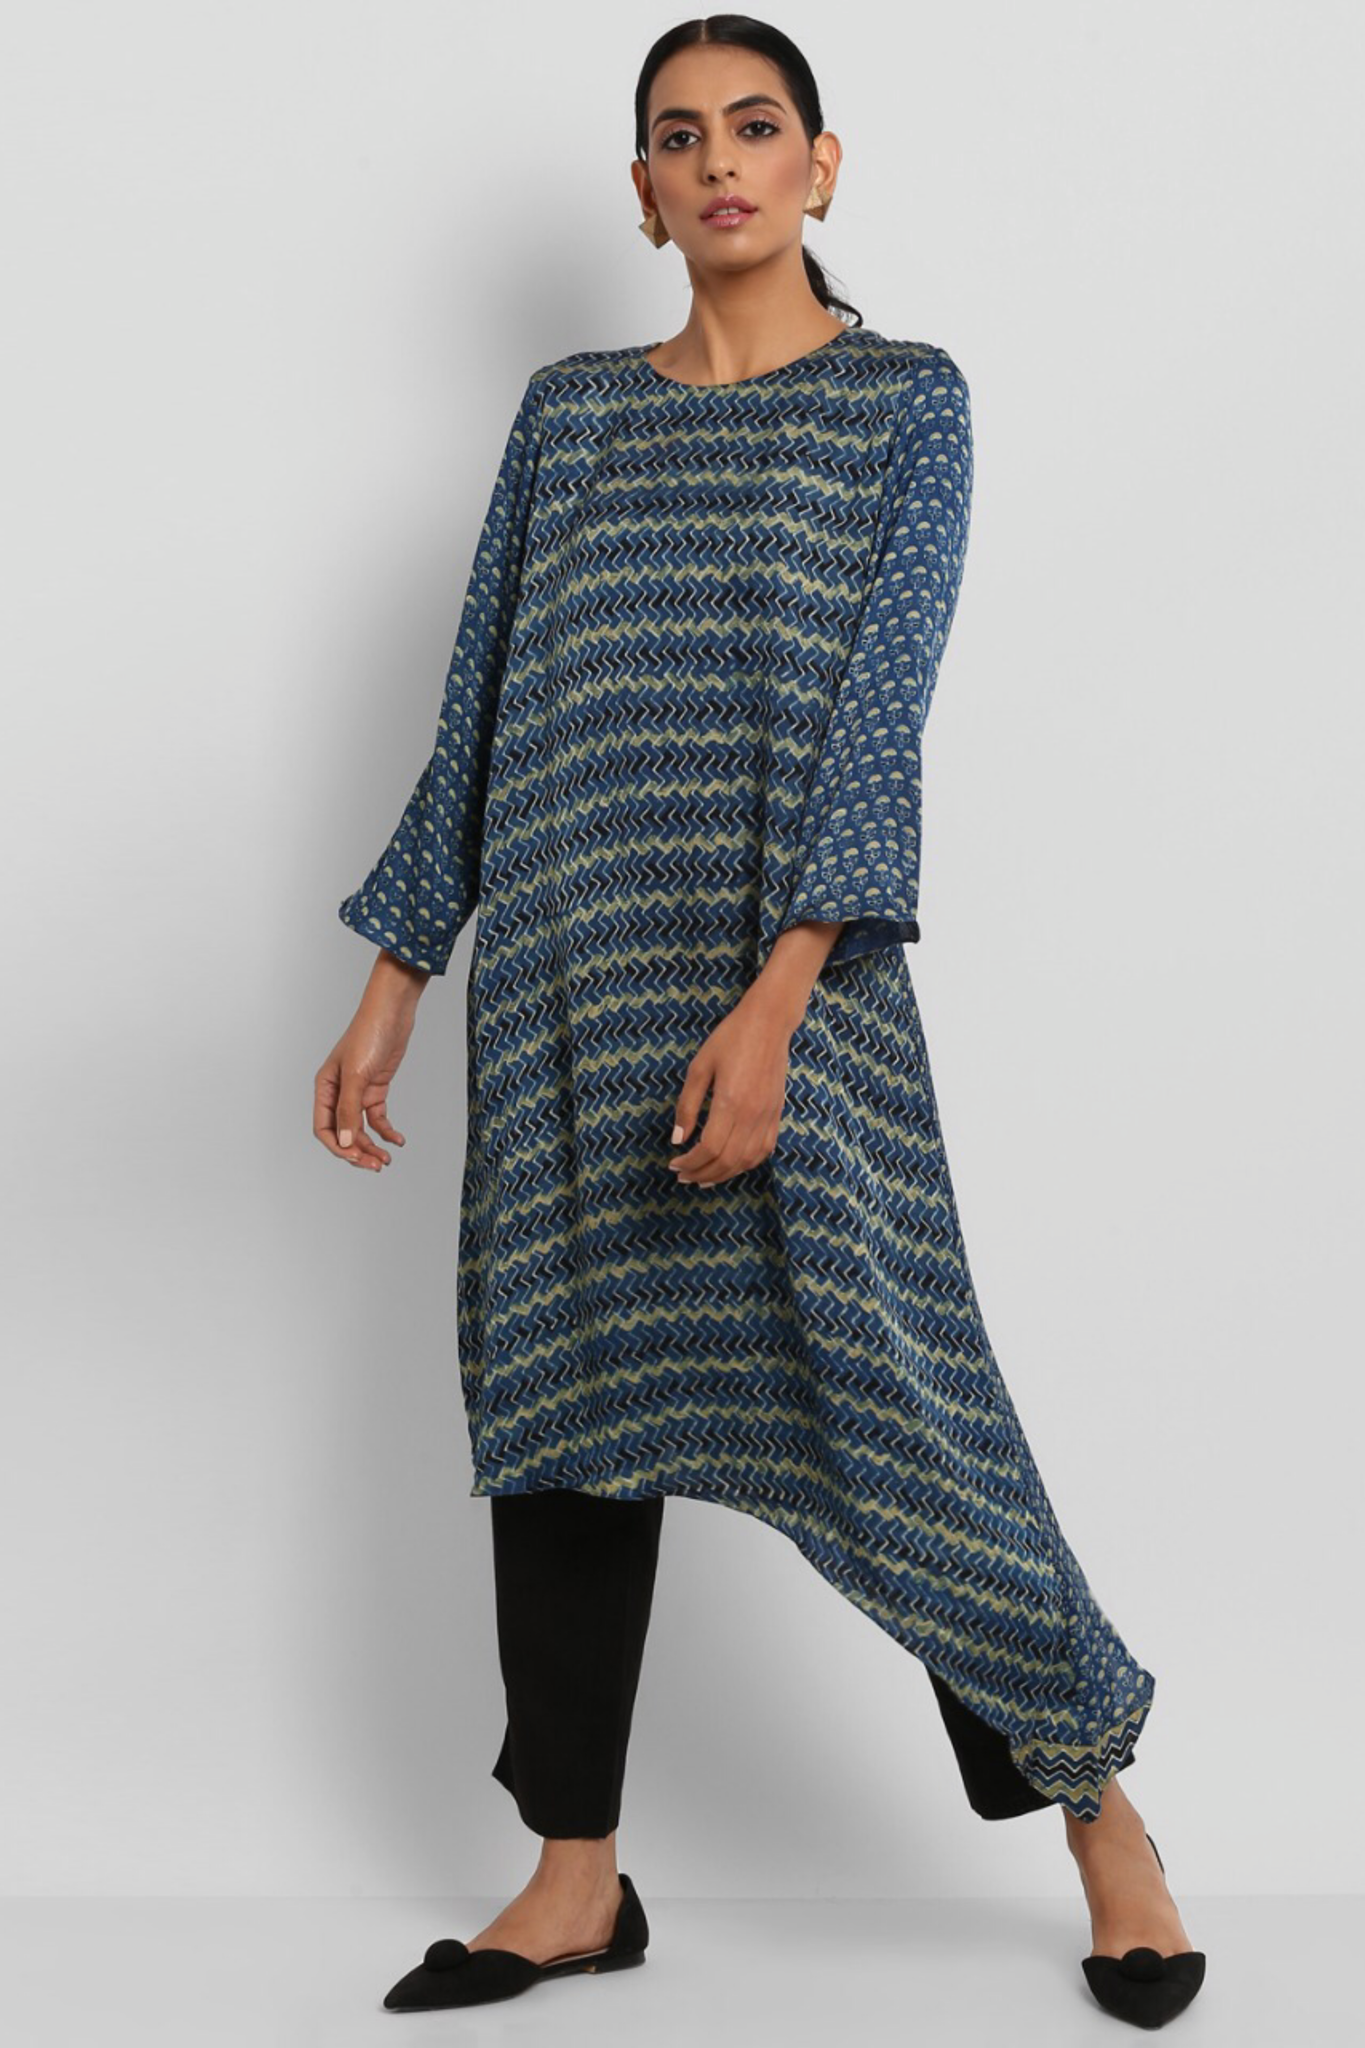 MODAL ASYMMETRICAL DRESS - INDIGO YELLOW & WAVES